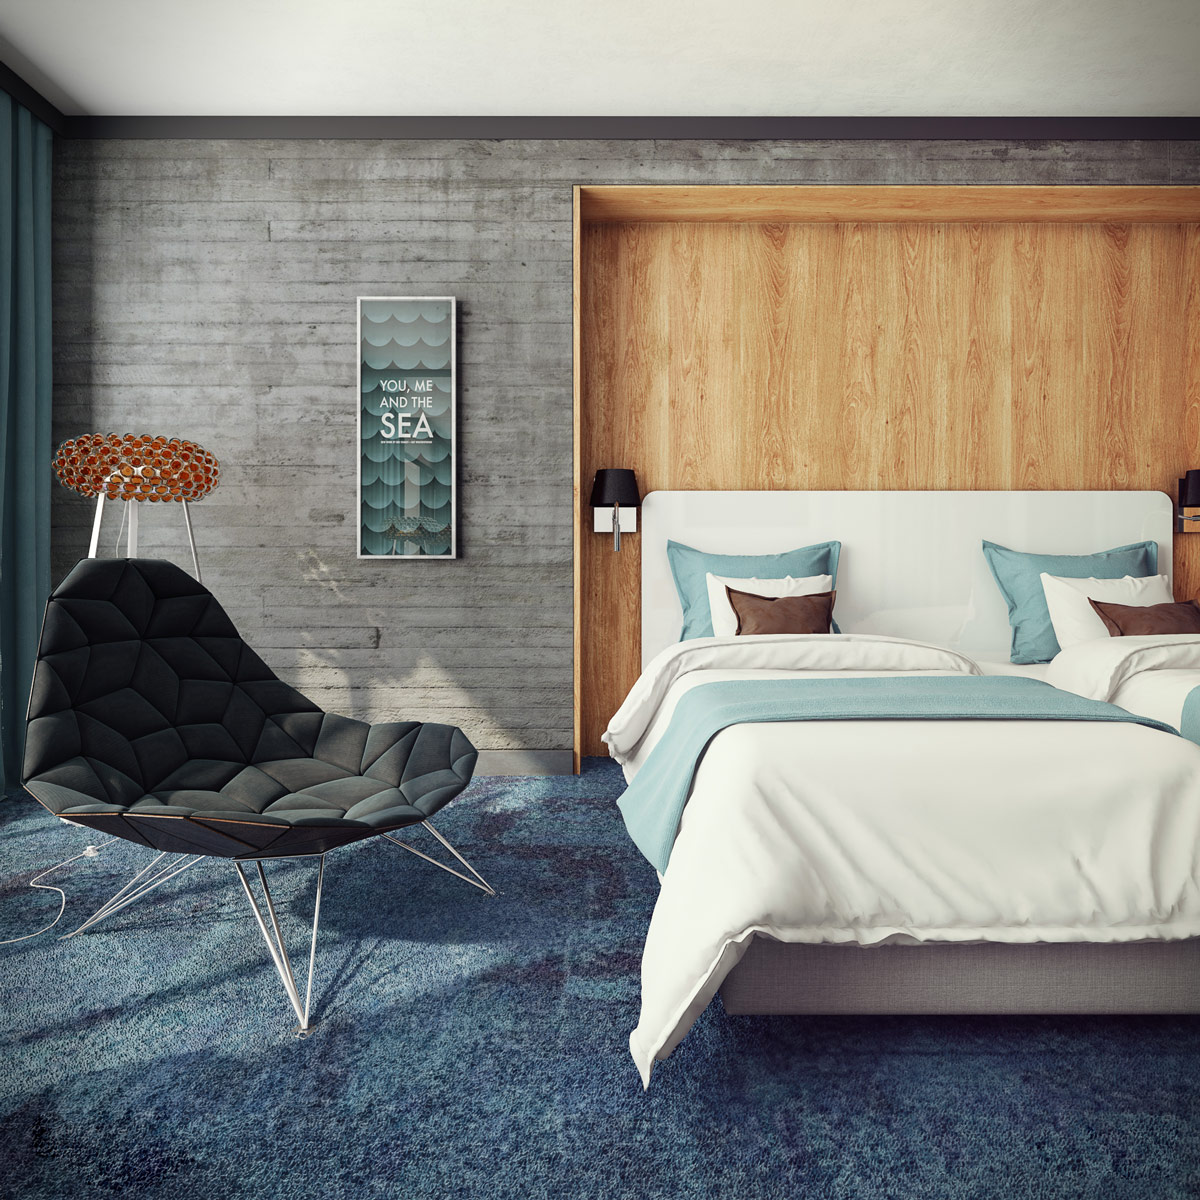 Concrete Wall Ideas : Concrete wall designs striking bedrooms that use